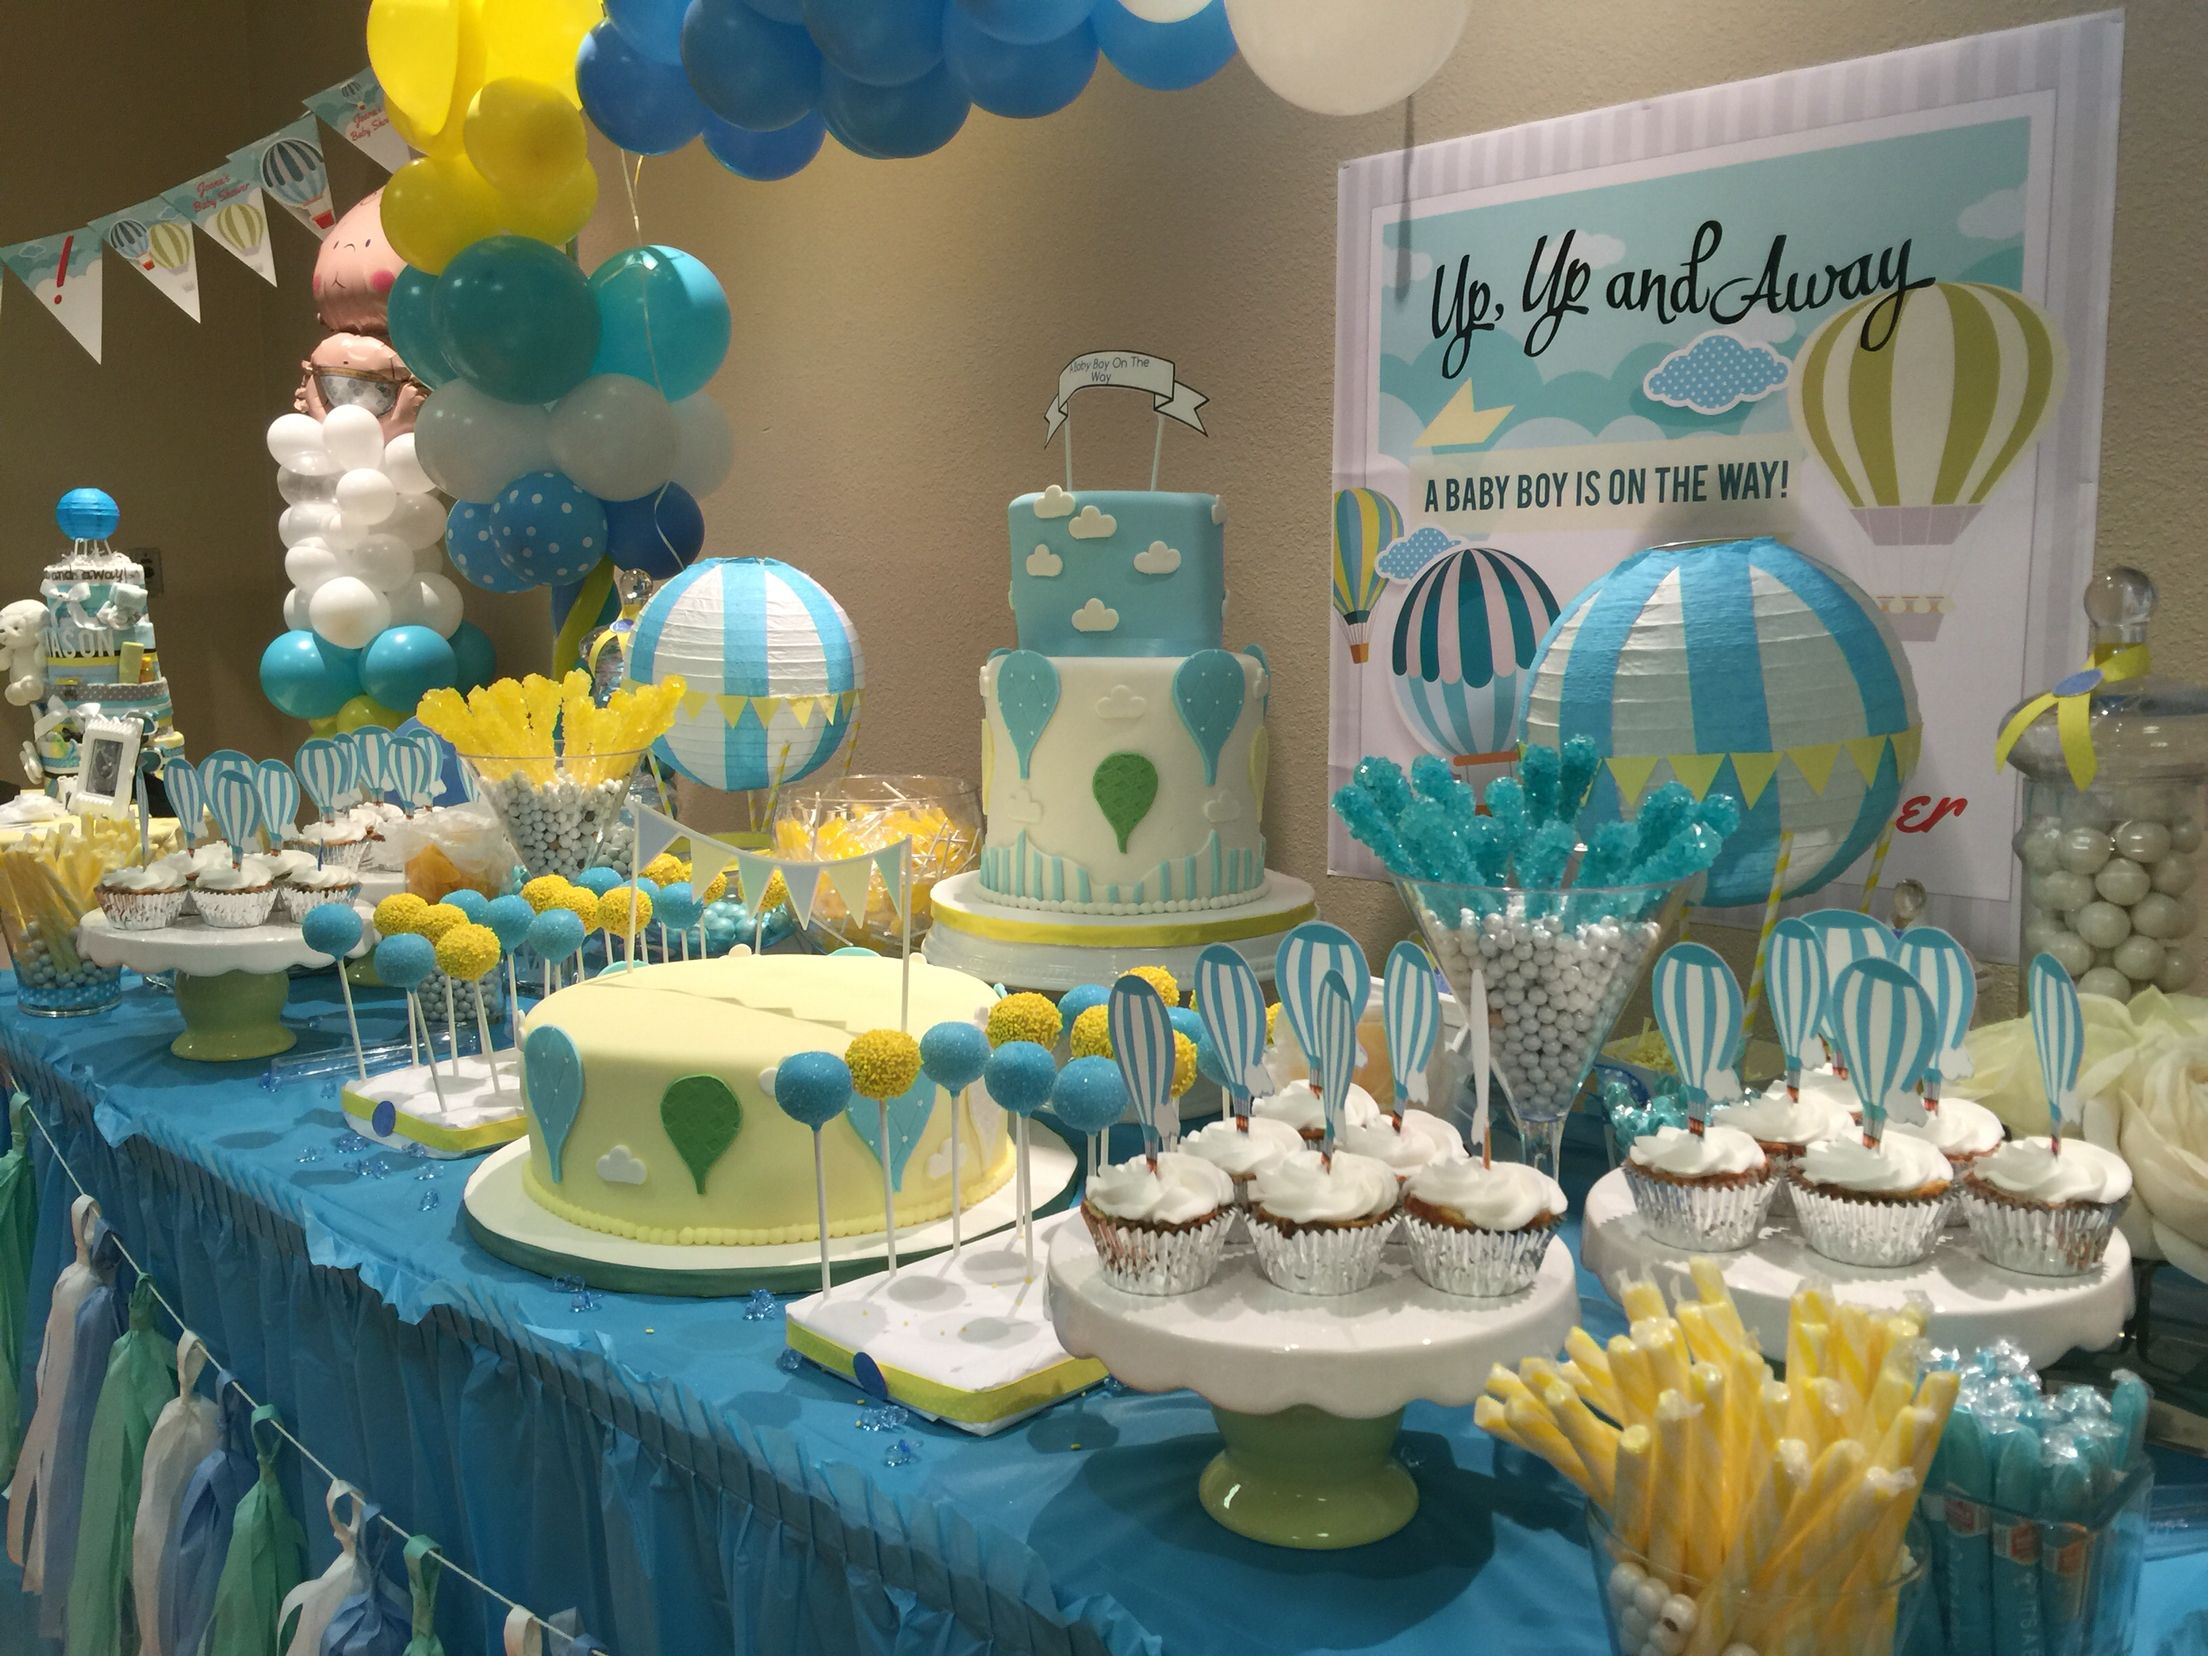 Amazing Baby Shower Desert/Candy Buffet Idea. Hot Air Balloon Theme For Boy.